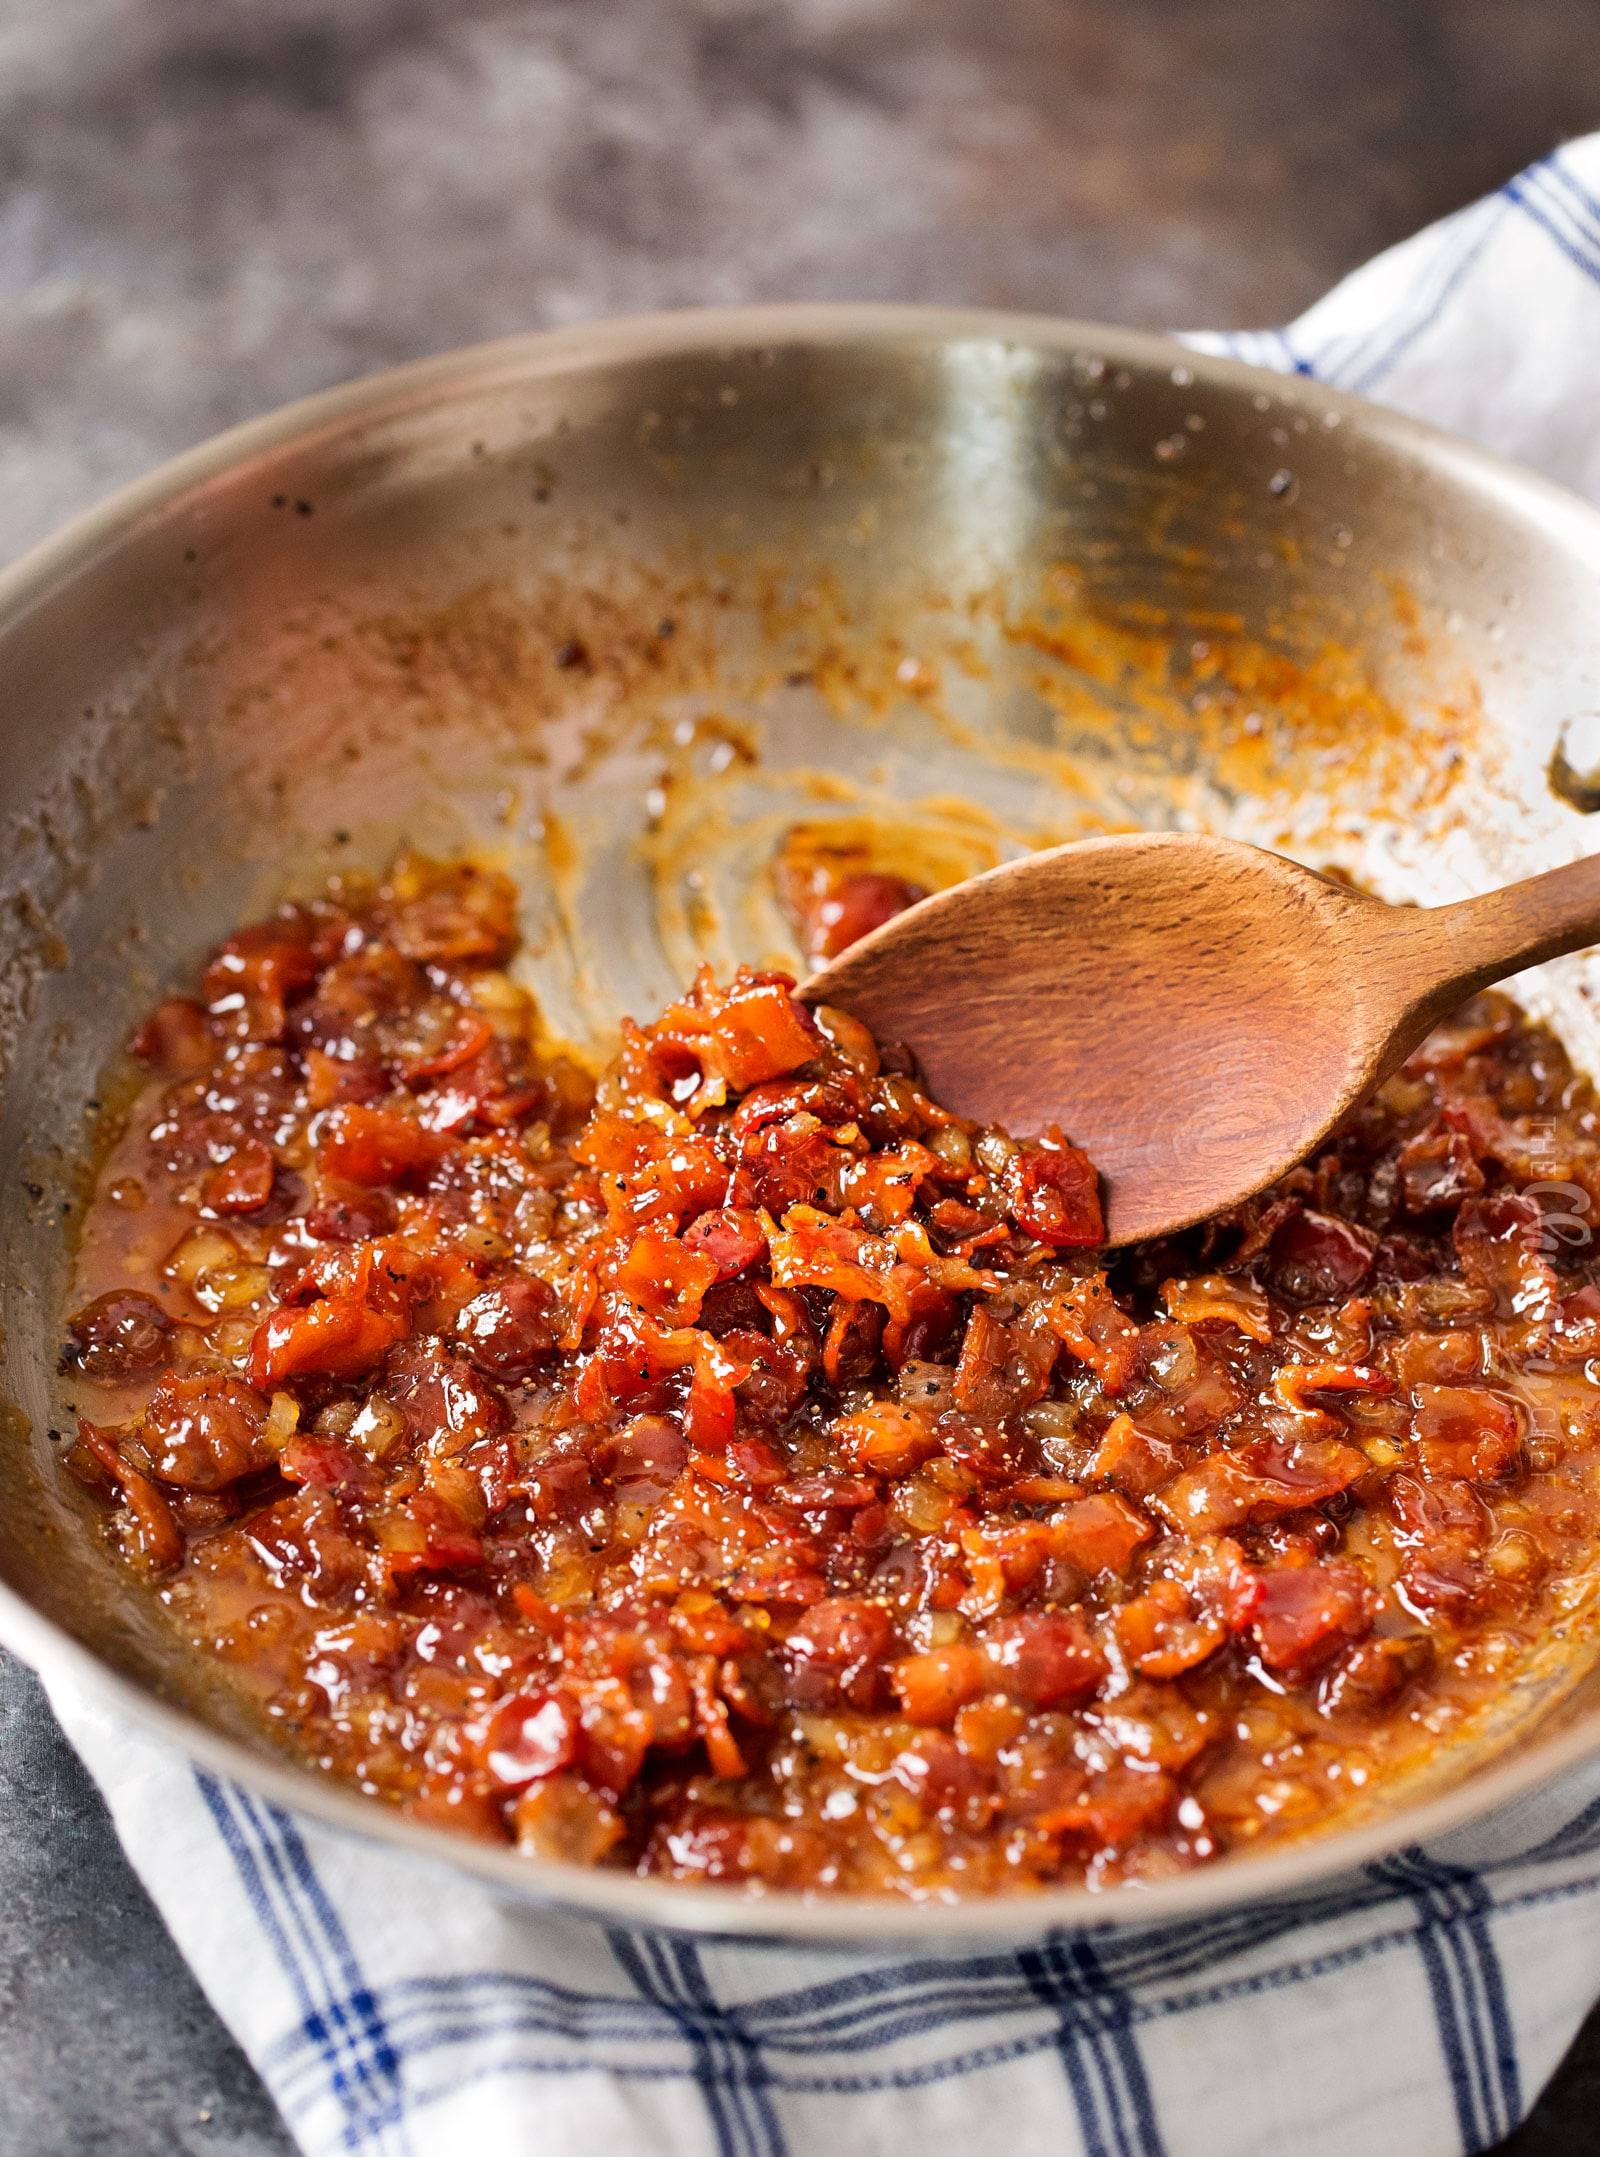 Homemade Bourbon Bacon Jam   Made in one skillet, in less than 30 minutes, this bacon jam get a boozy kick from smooth bourbon. Perfect to spread on just about anything, and it also makes a great gift!   http://thechunkychef.com